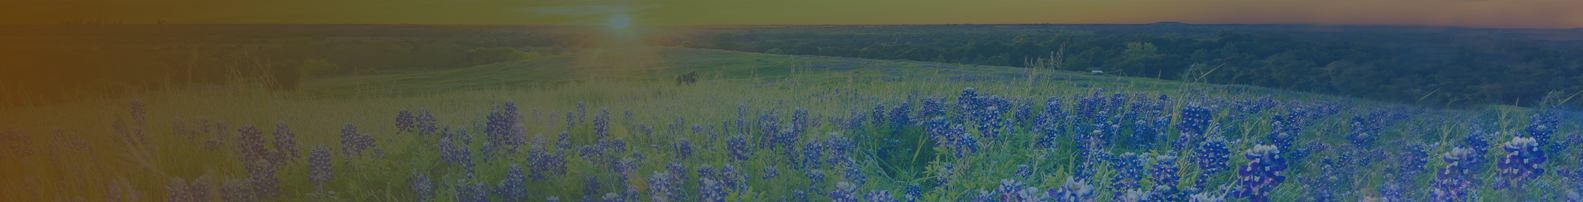 Photo of Blue Bonnets at dusk